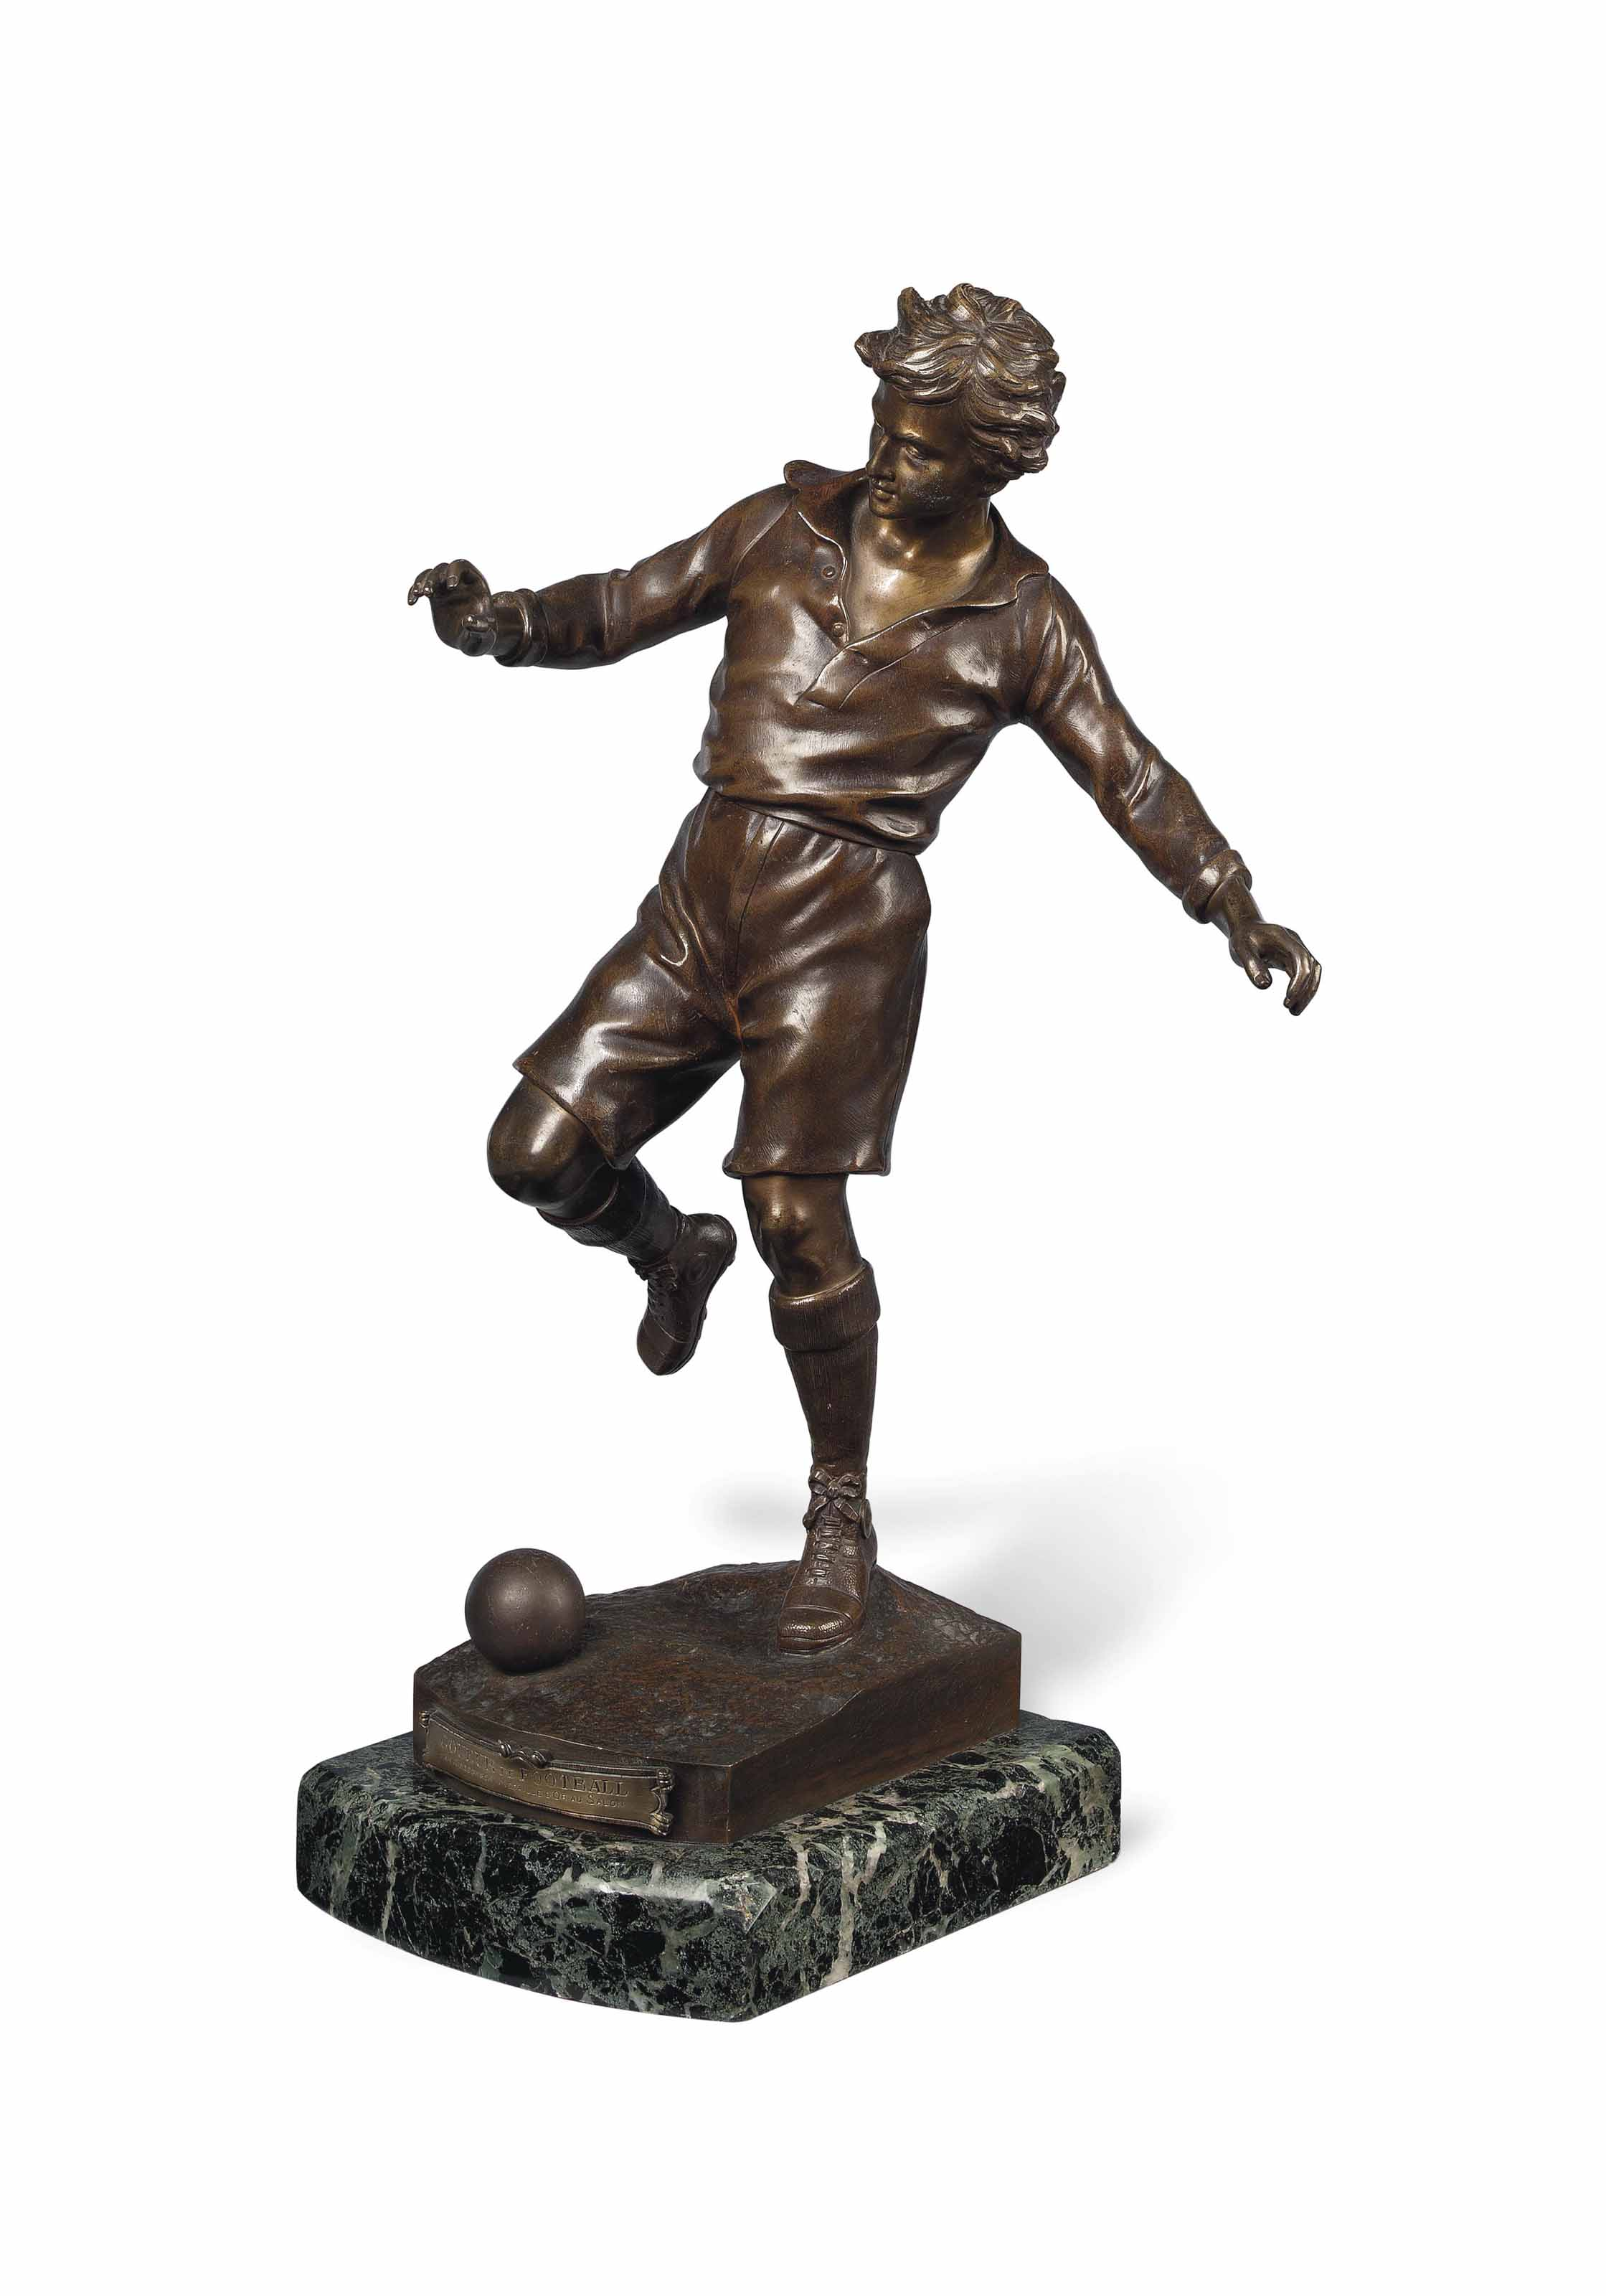 A FRENCH BRONZE FIGURE OF A FOOTBALL PLAYER